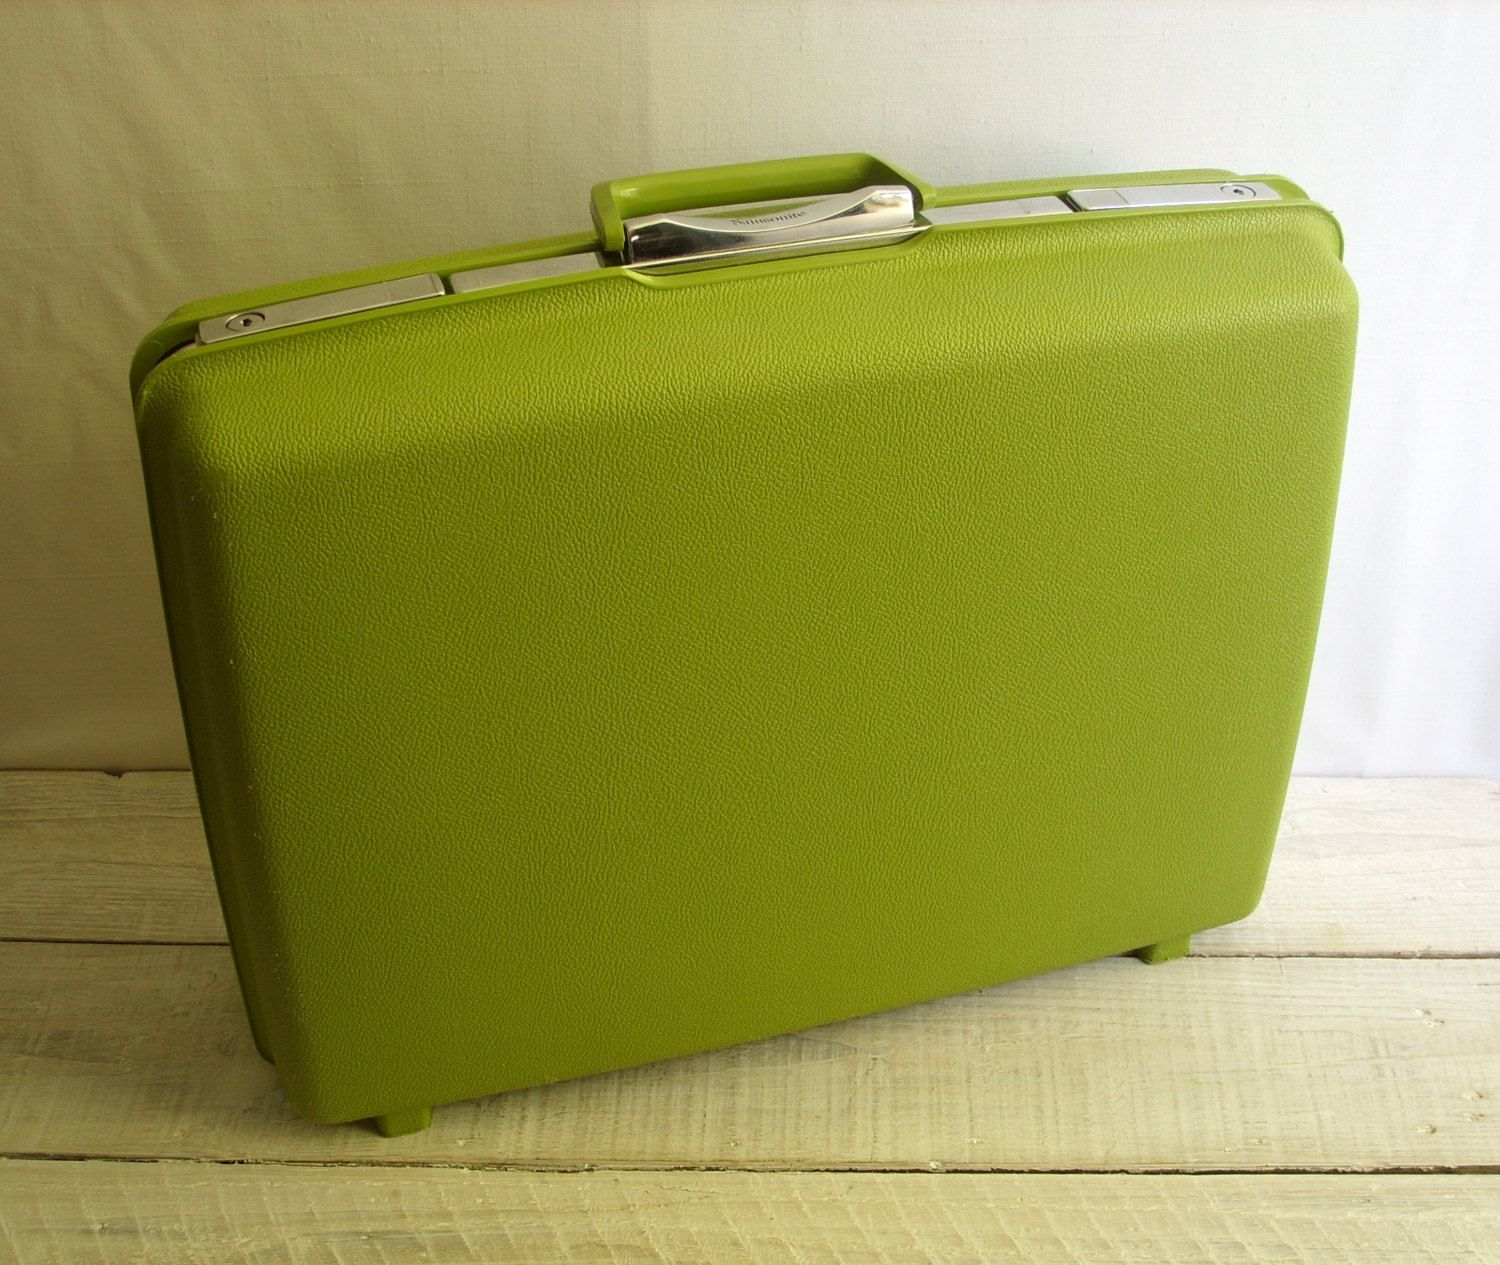 Vintage Samsonite Suitcase ~ Hard Plastic Medium Size Travel ...